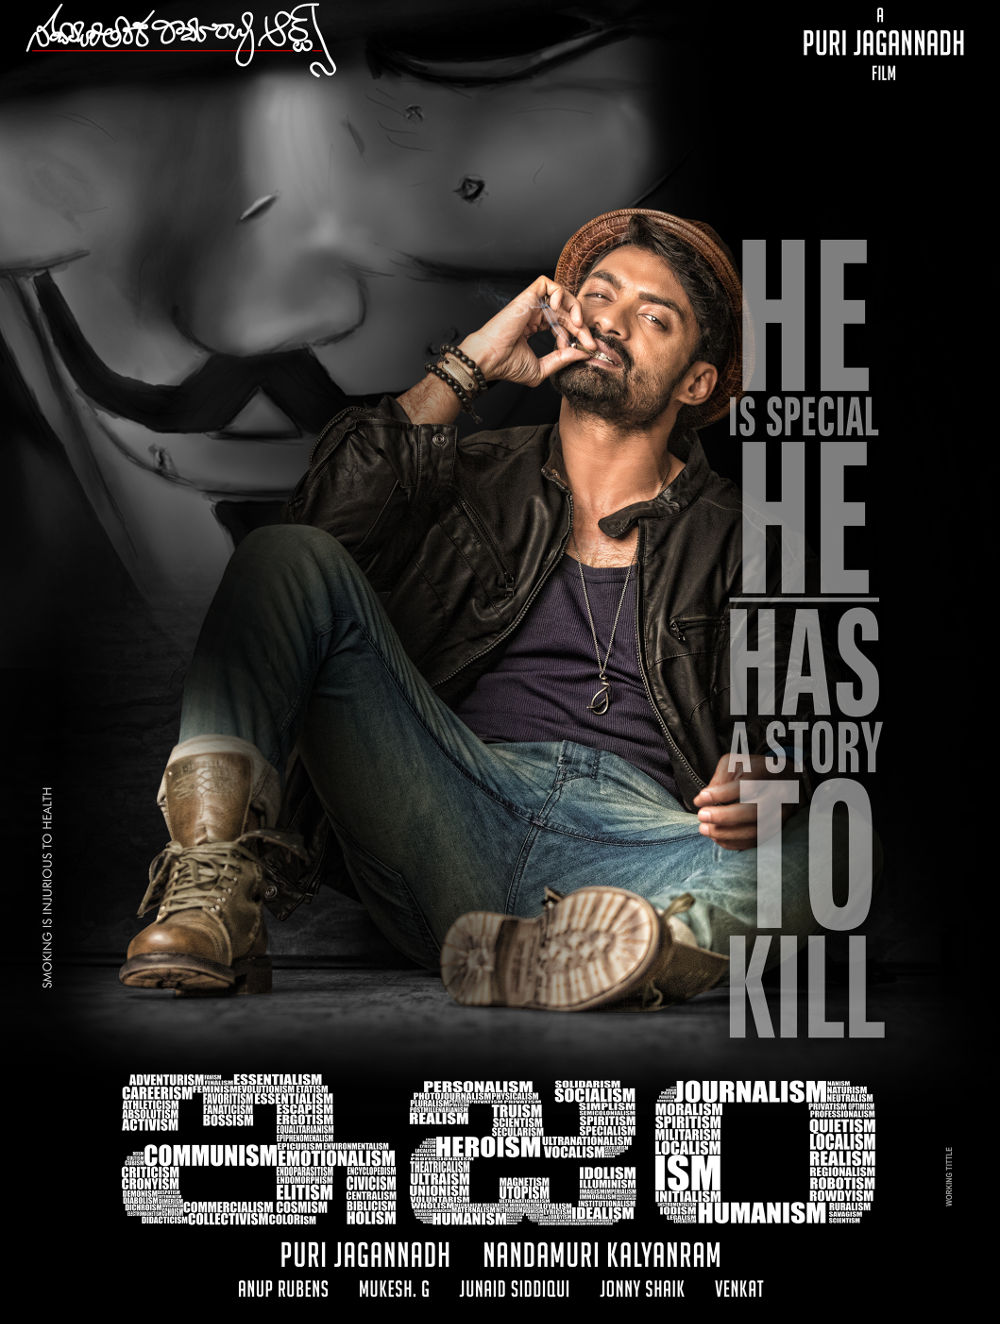 ISM-film-release-on-29-September-Kalyan-Ram-Puri-Jagannadh